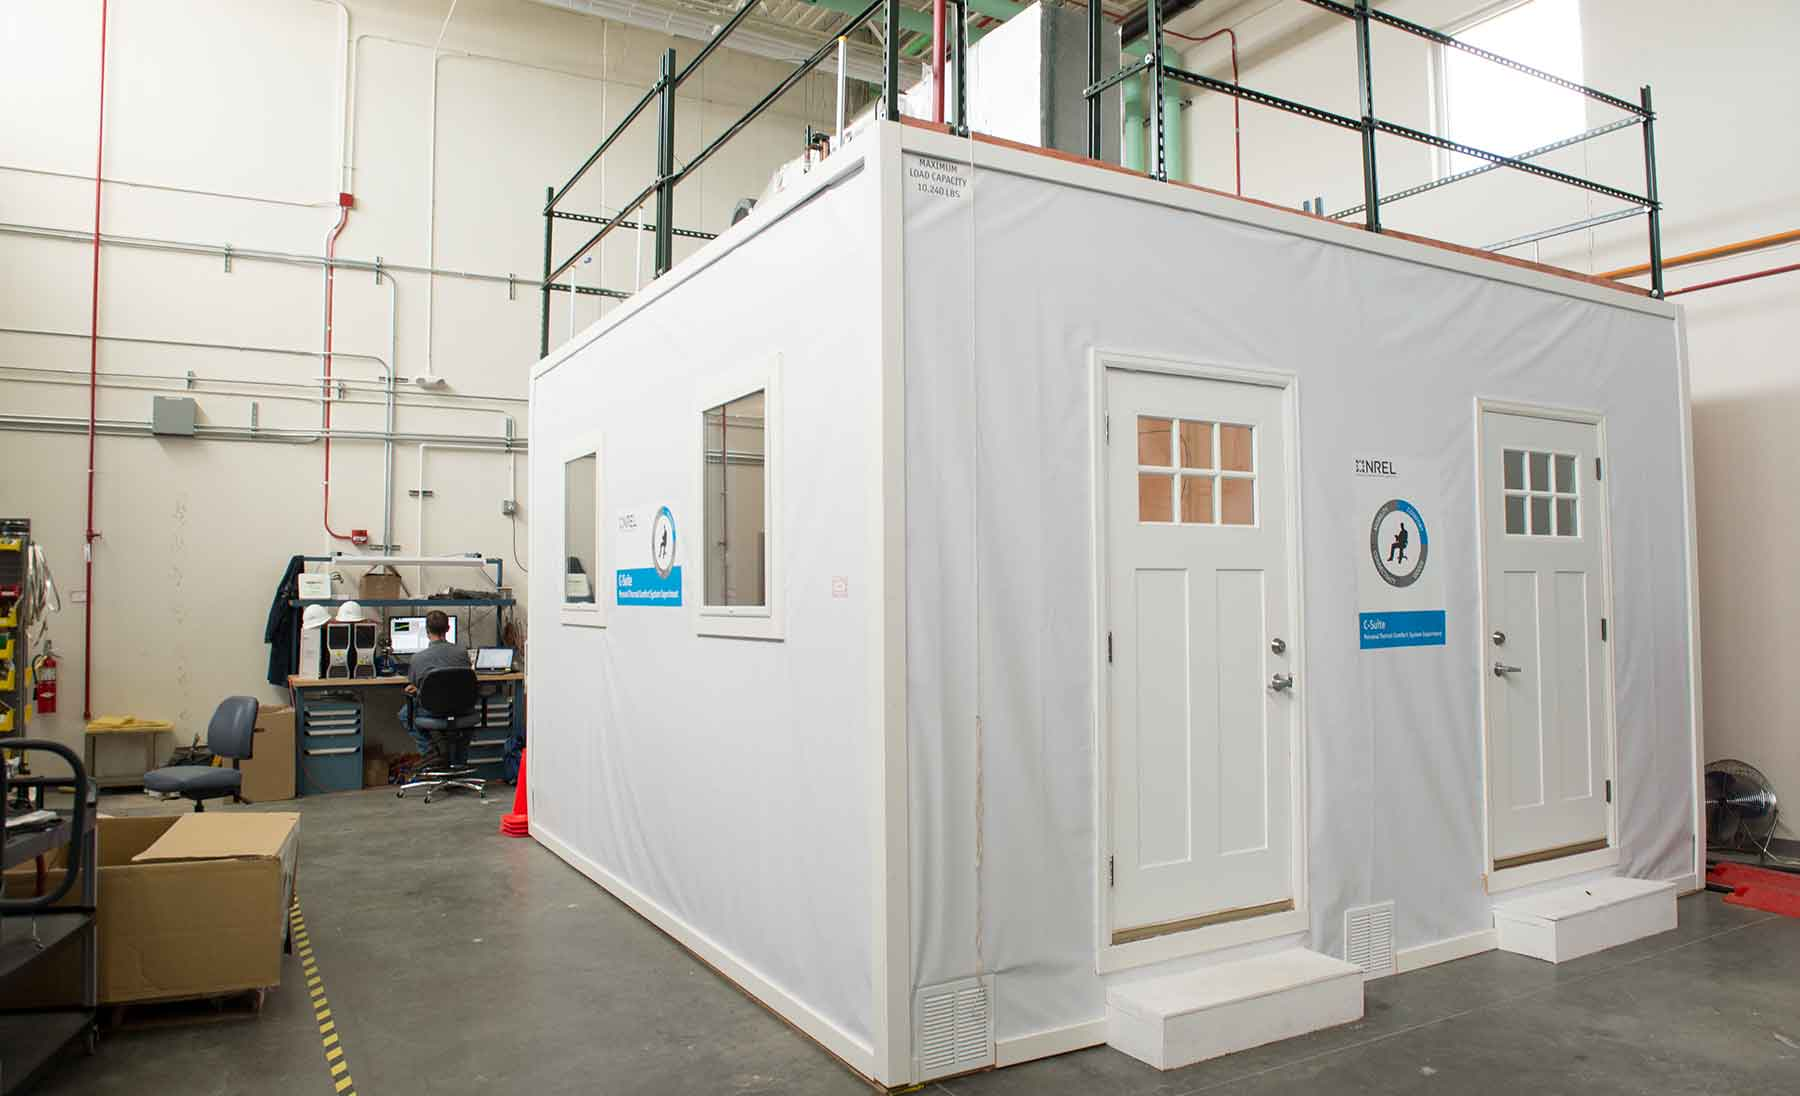 Photo shows the Comfort Suite structure, a white room with two doors and windows in a laboratory facility.